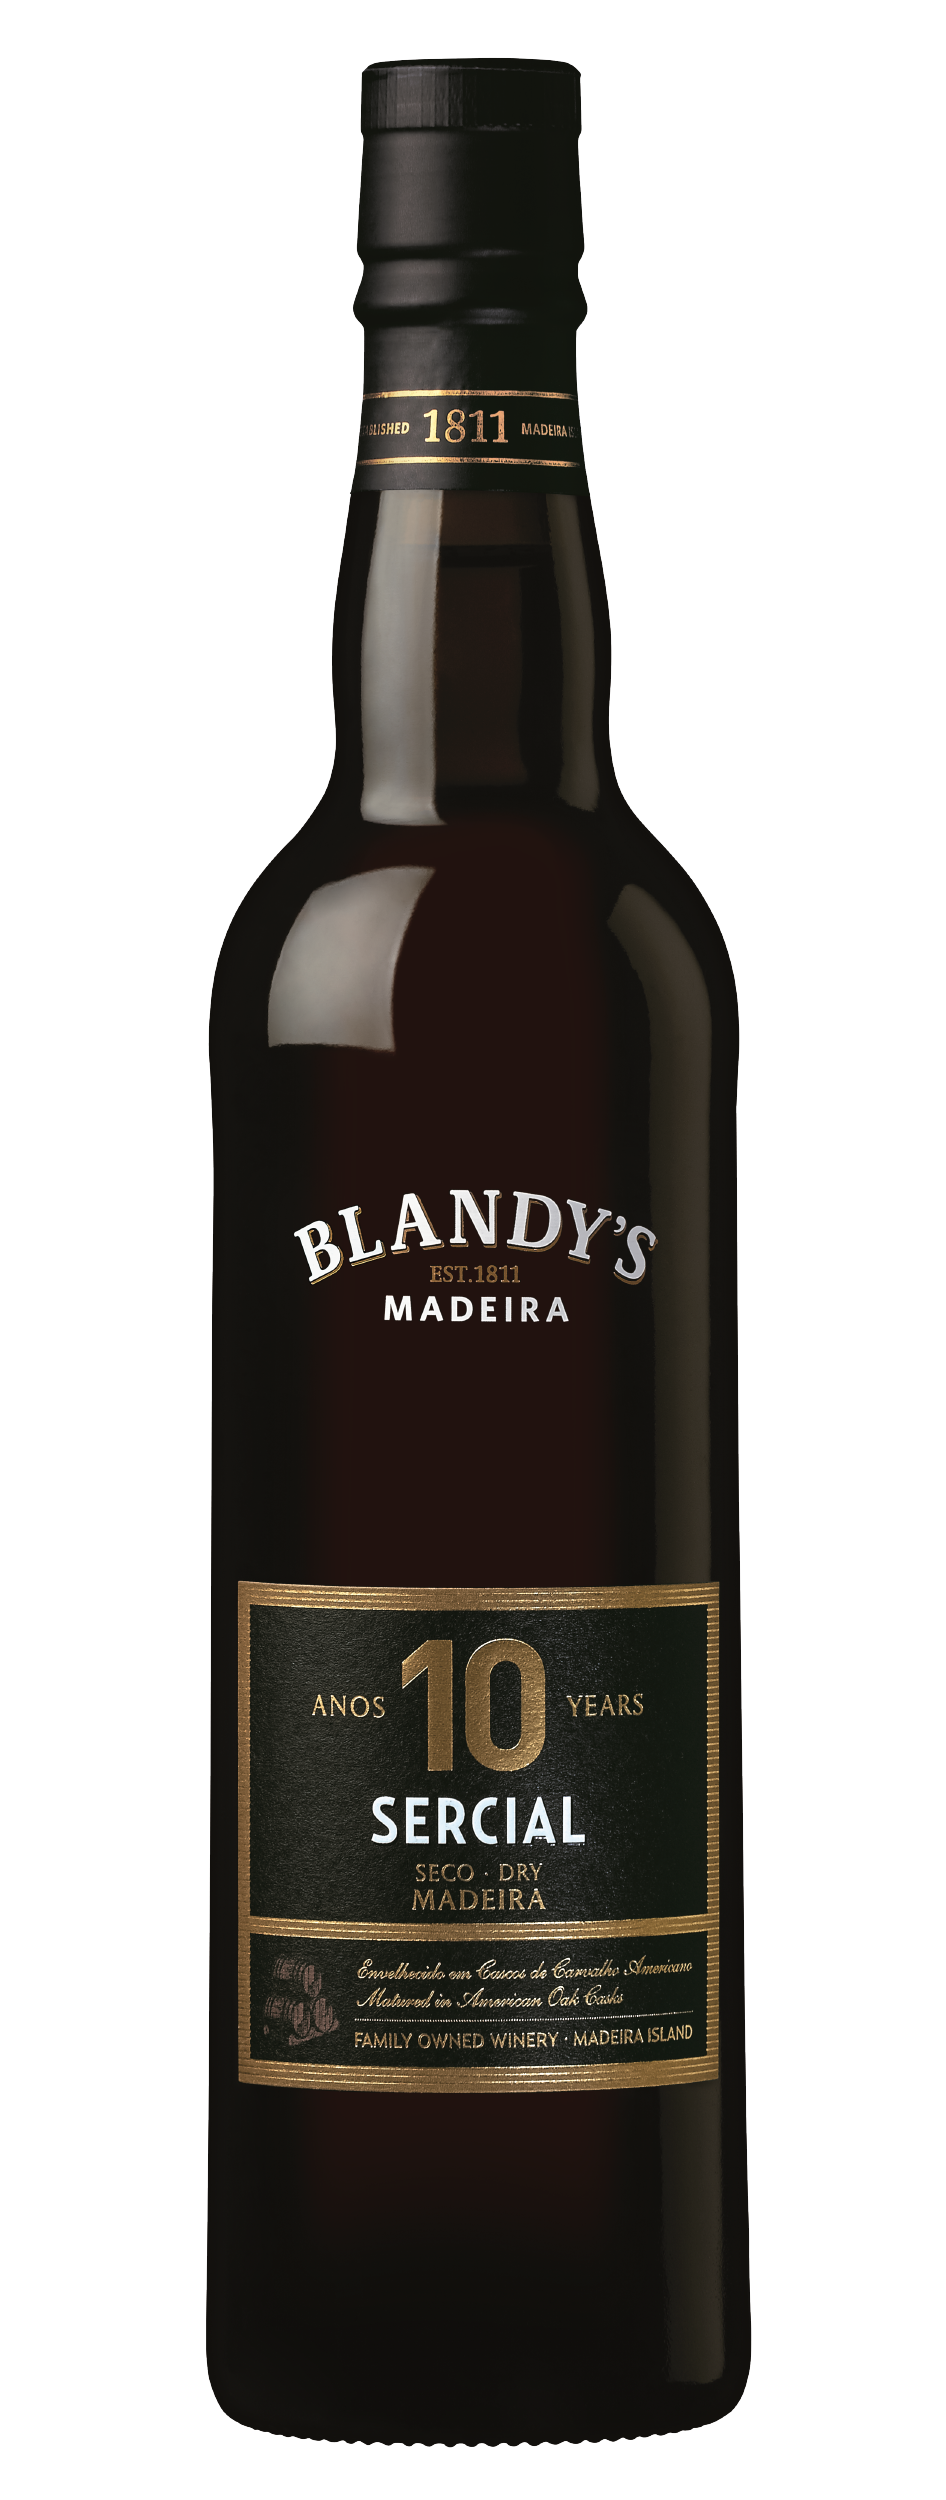 Product Image for BLANDY'S SERCIAL 10 YEAR OLD